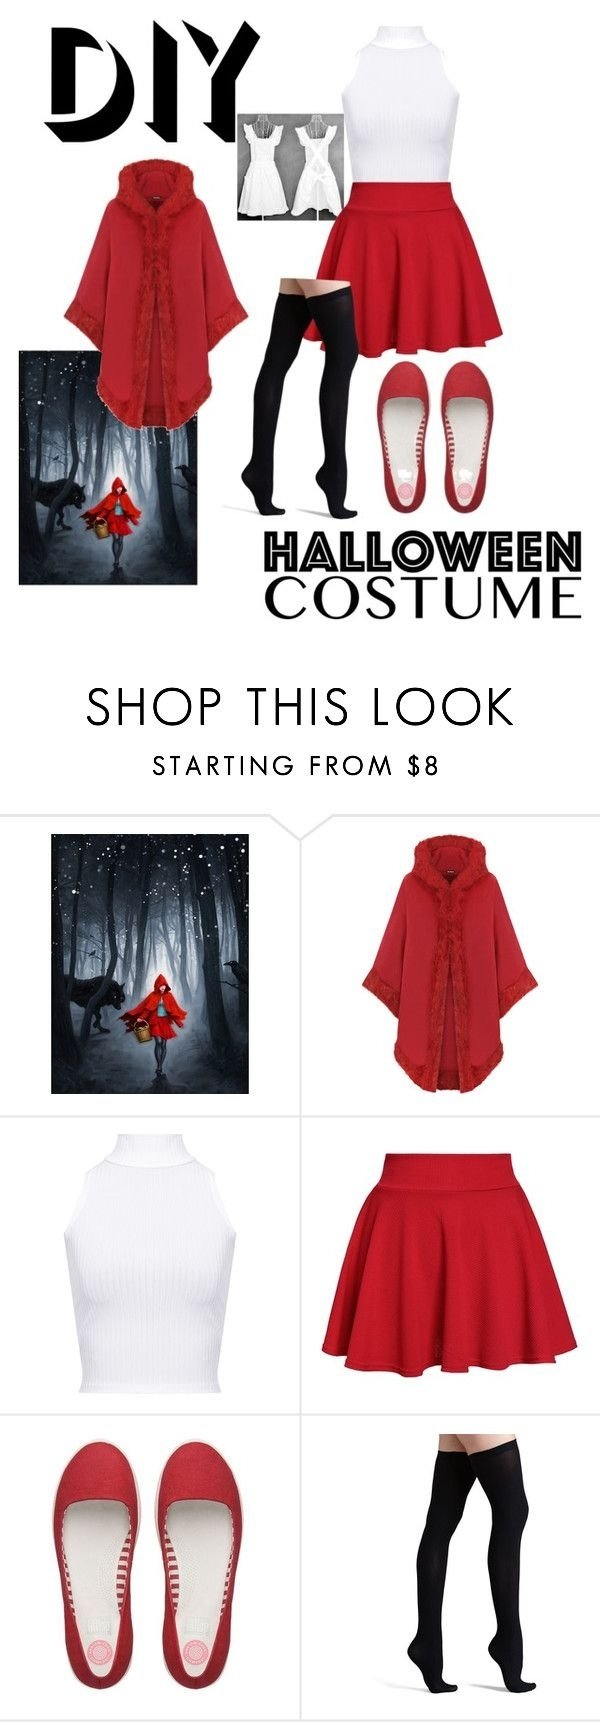 10 Trendy Red Riding Hood Costume Ideas